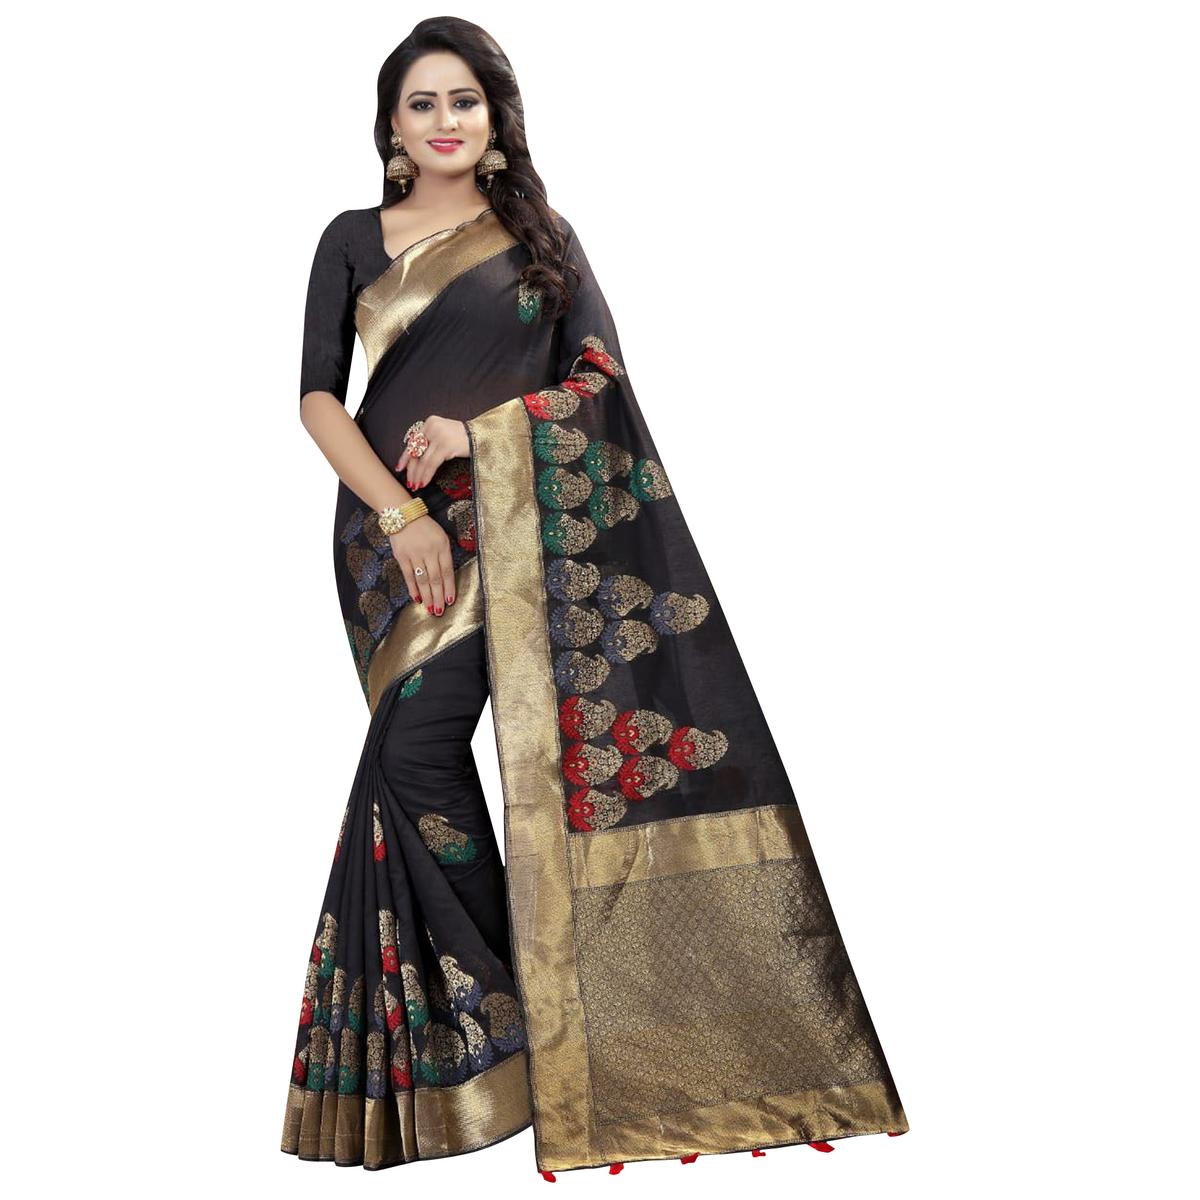 Majestic Black Colored Festive Wear Linen Jacquard Saree